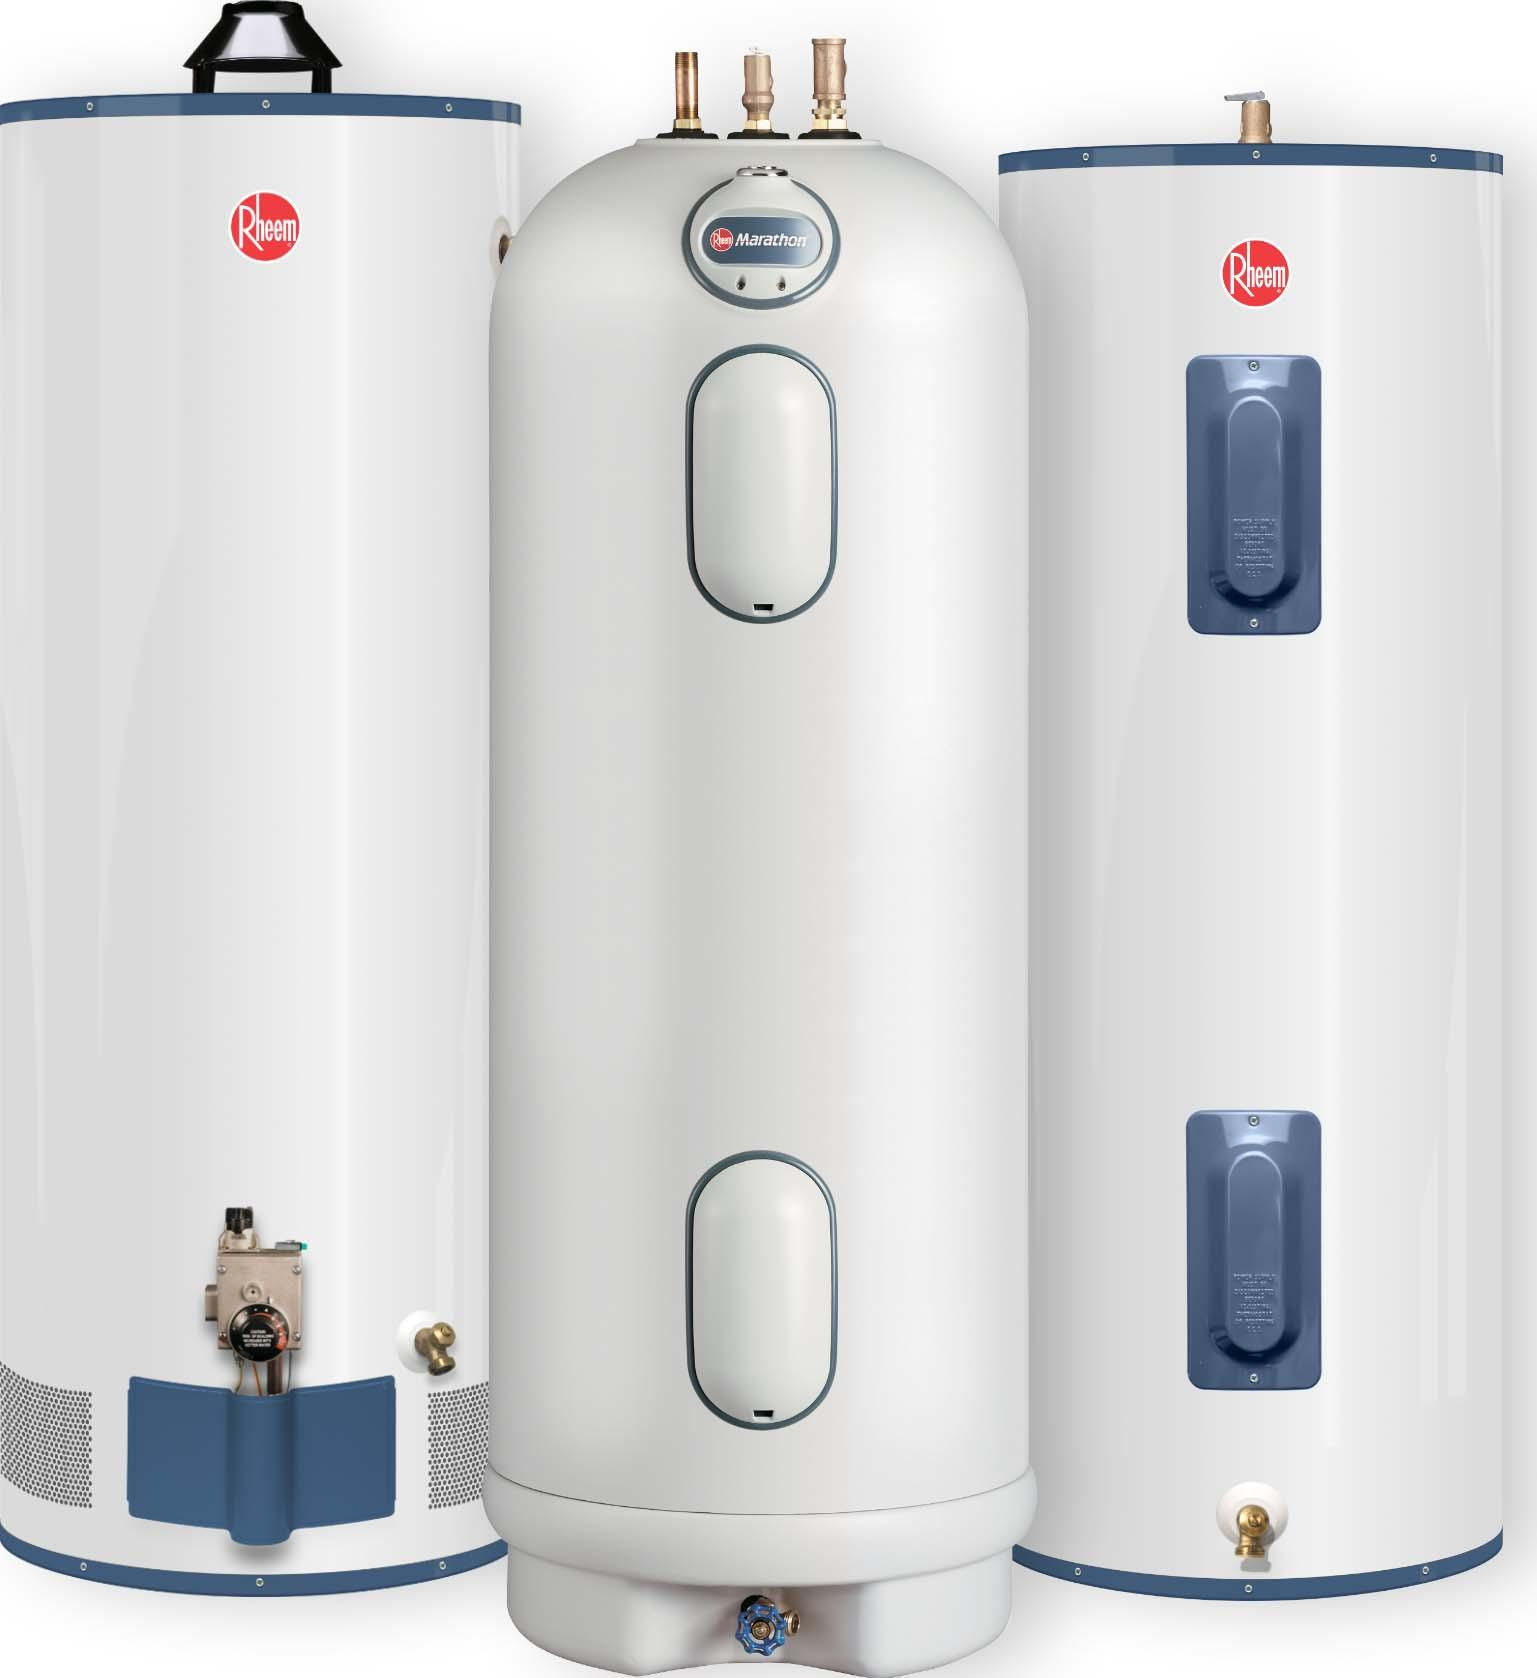 heater repair bosch tankless water heater repair manual rh heaterrepairhintomo blogspot com Bosch Tankless Water Heater Installation Natural Gas Tankless Water Heater